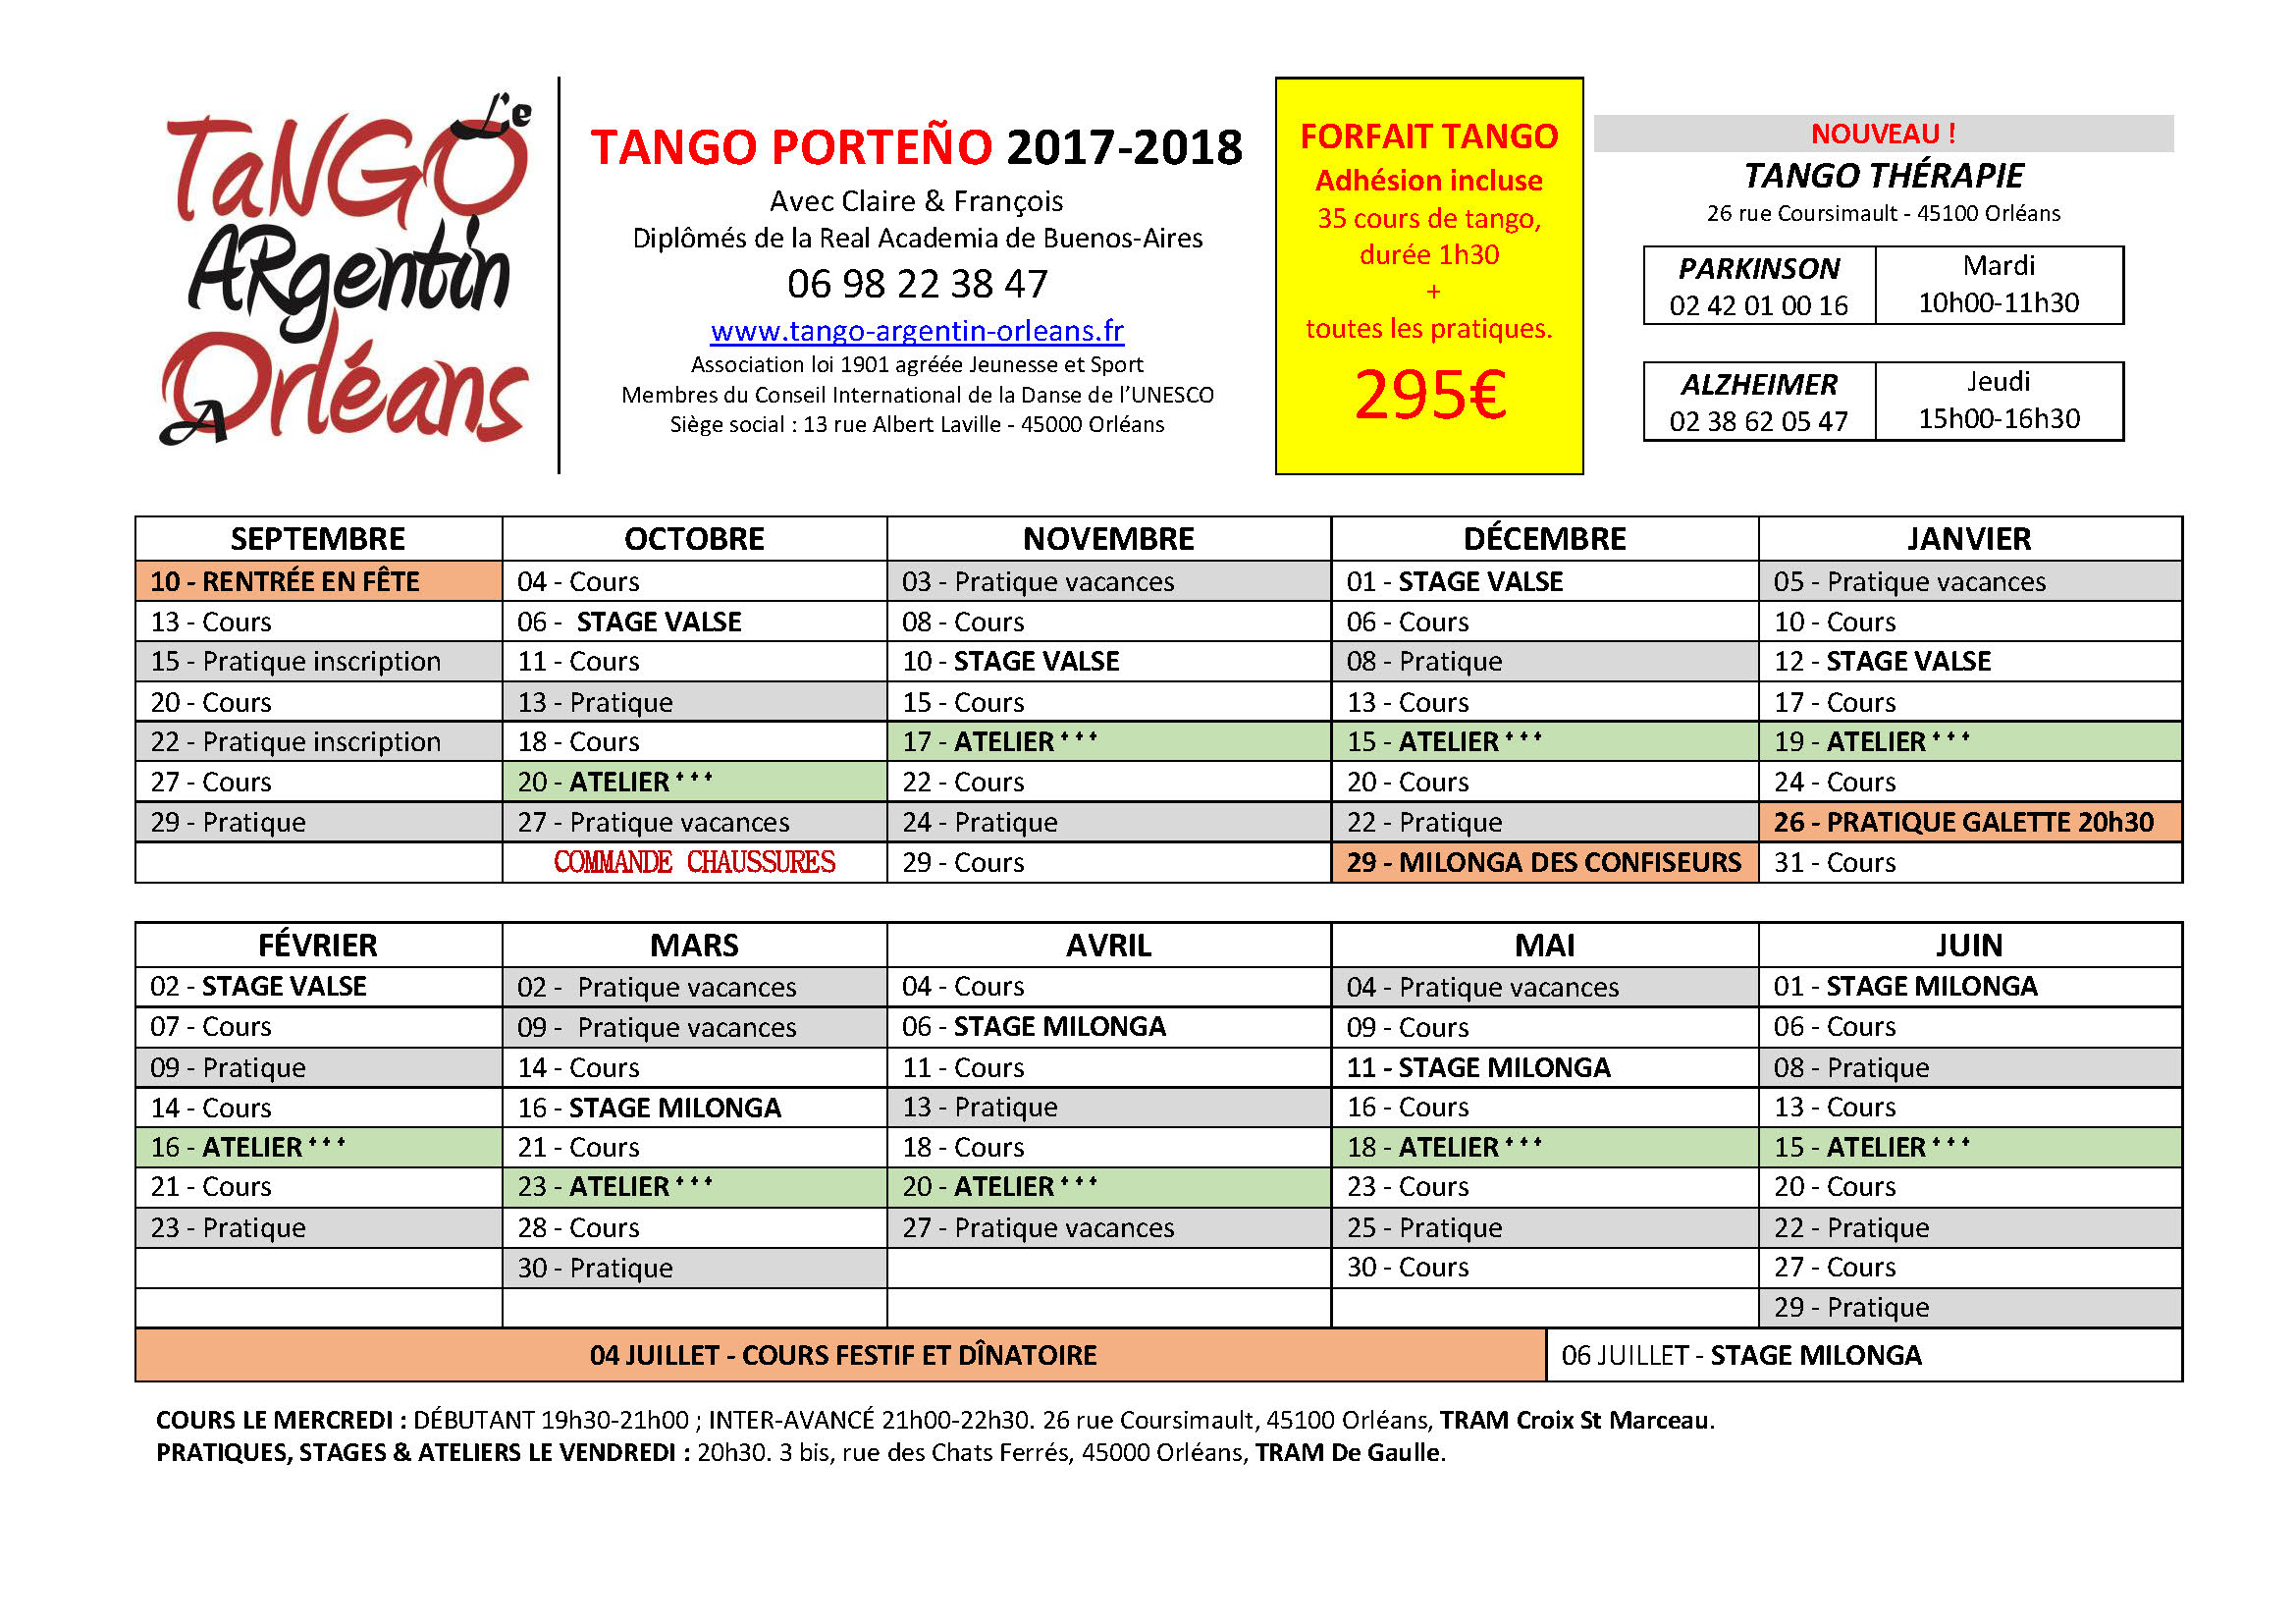 tango-argentin-orleans-calendrier